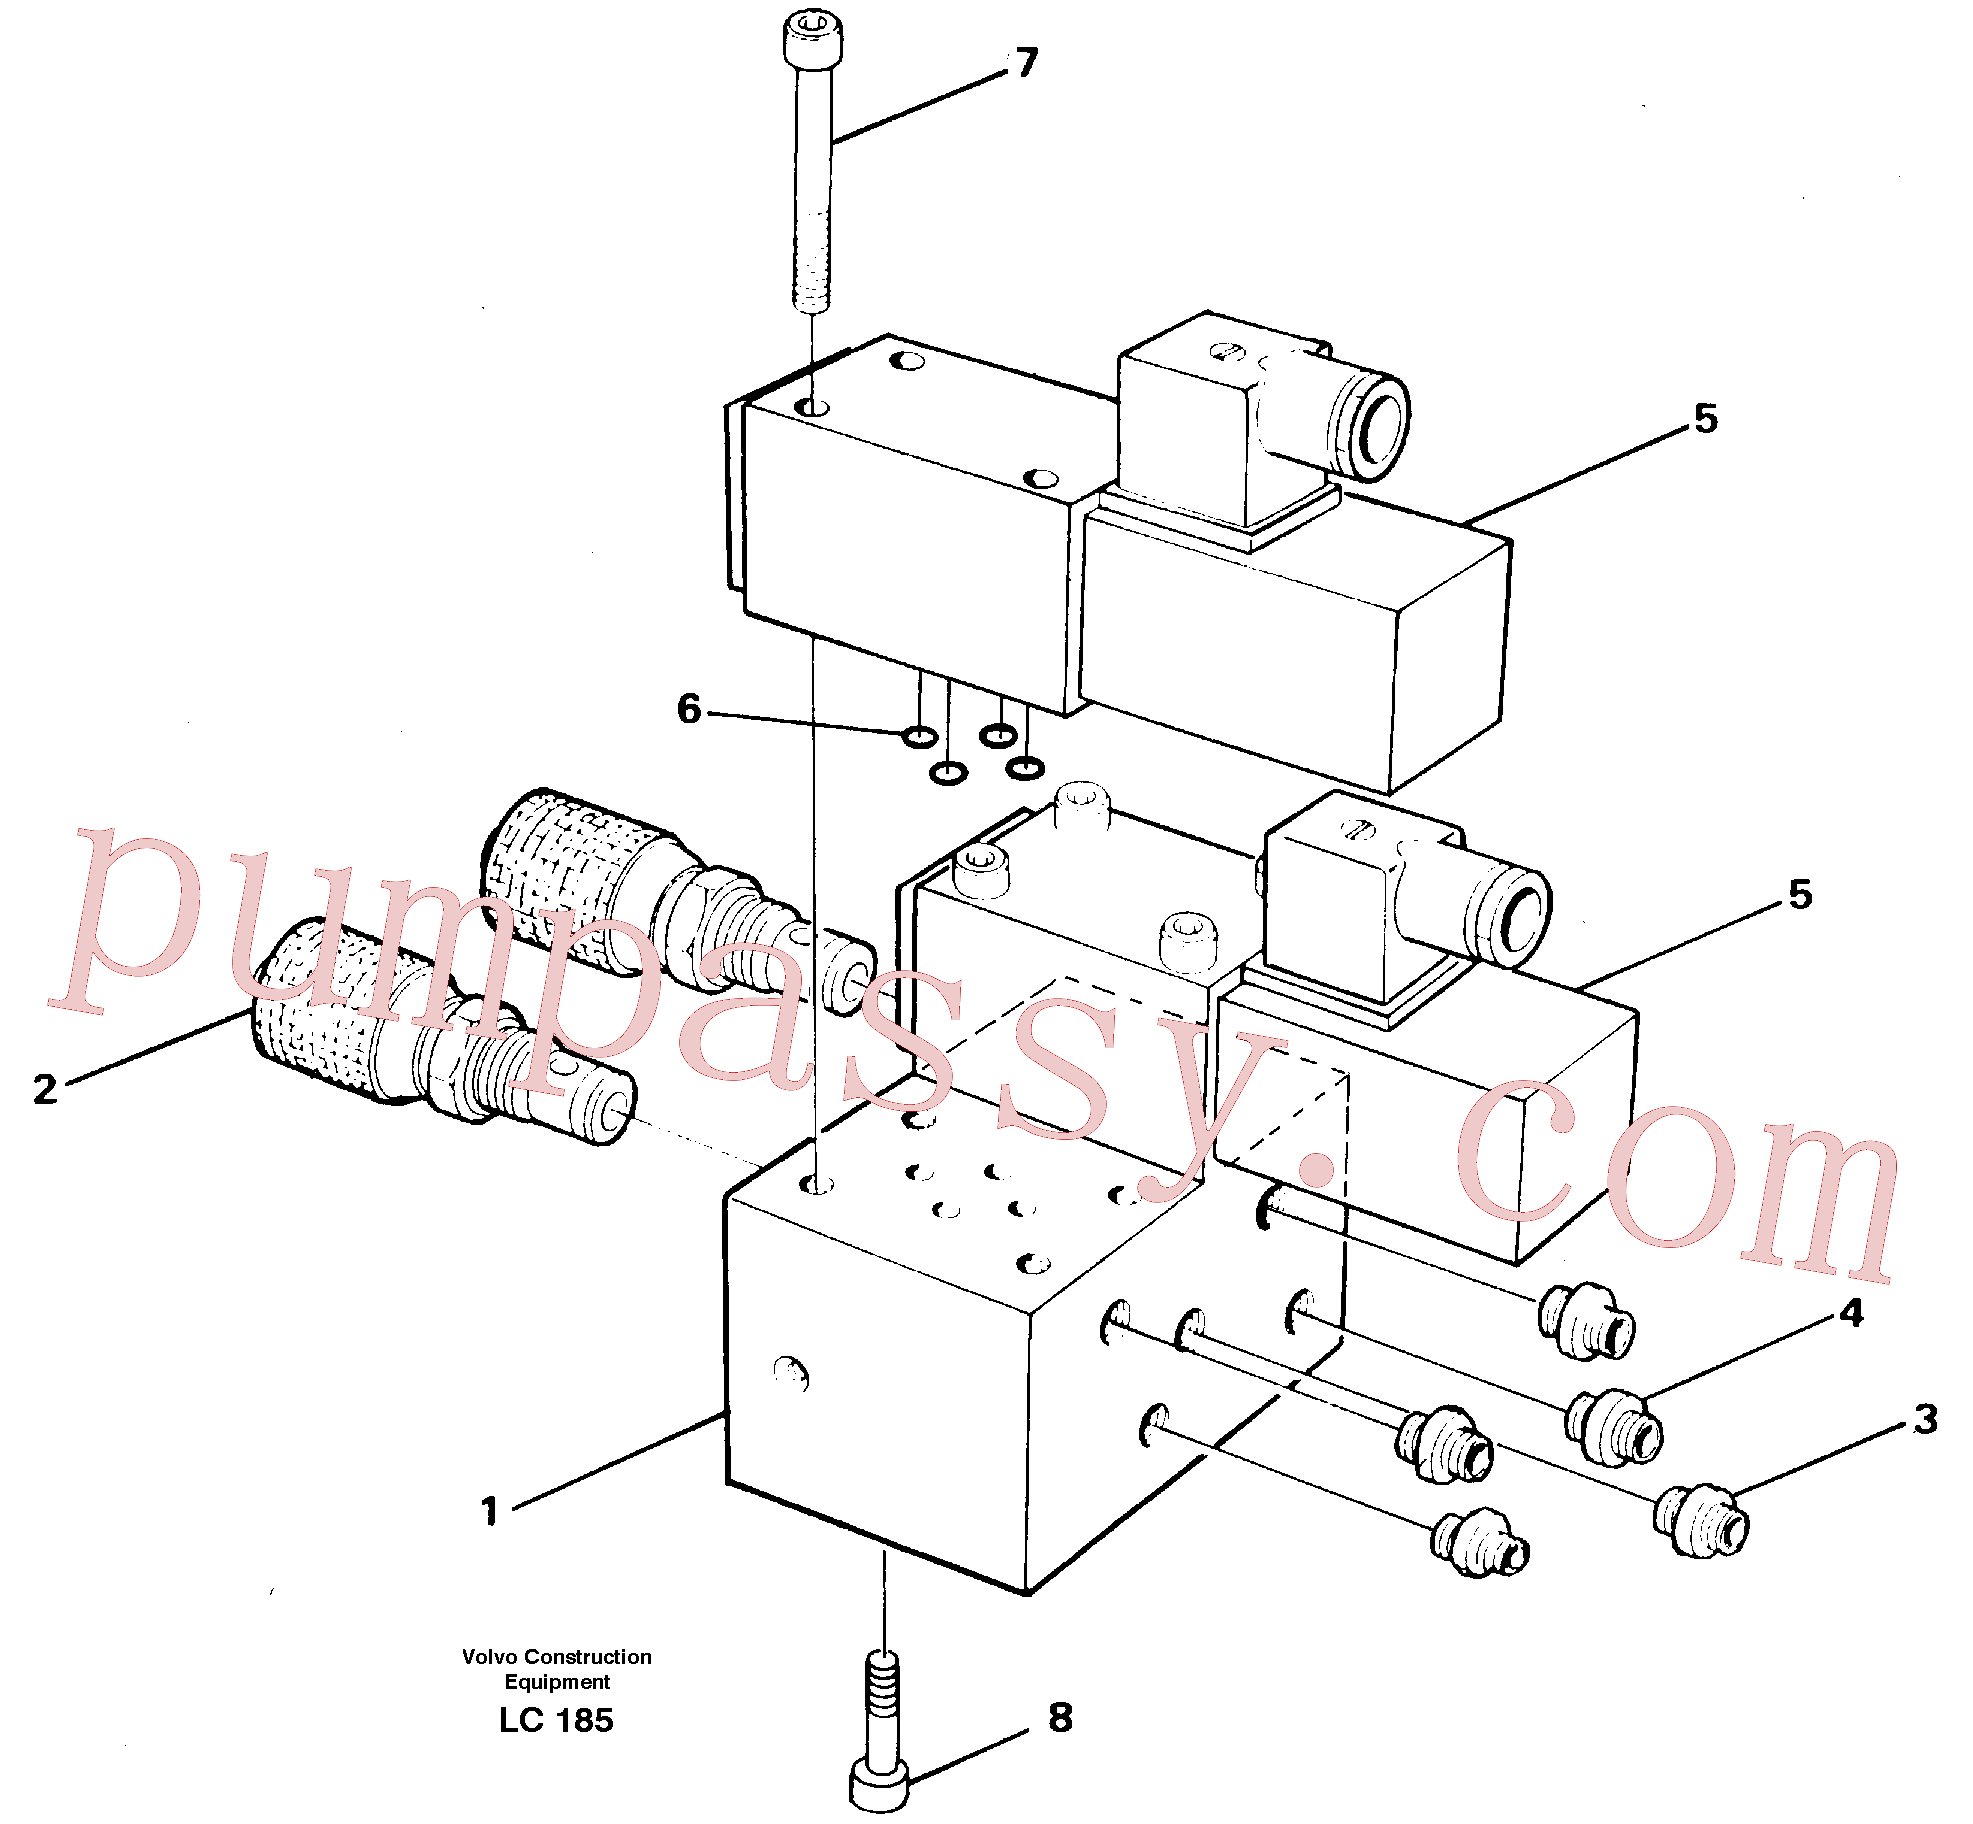 VOE14247352 for Volvo Control block for end position damp(LC185 assembly)